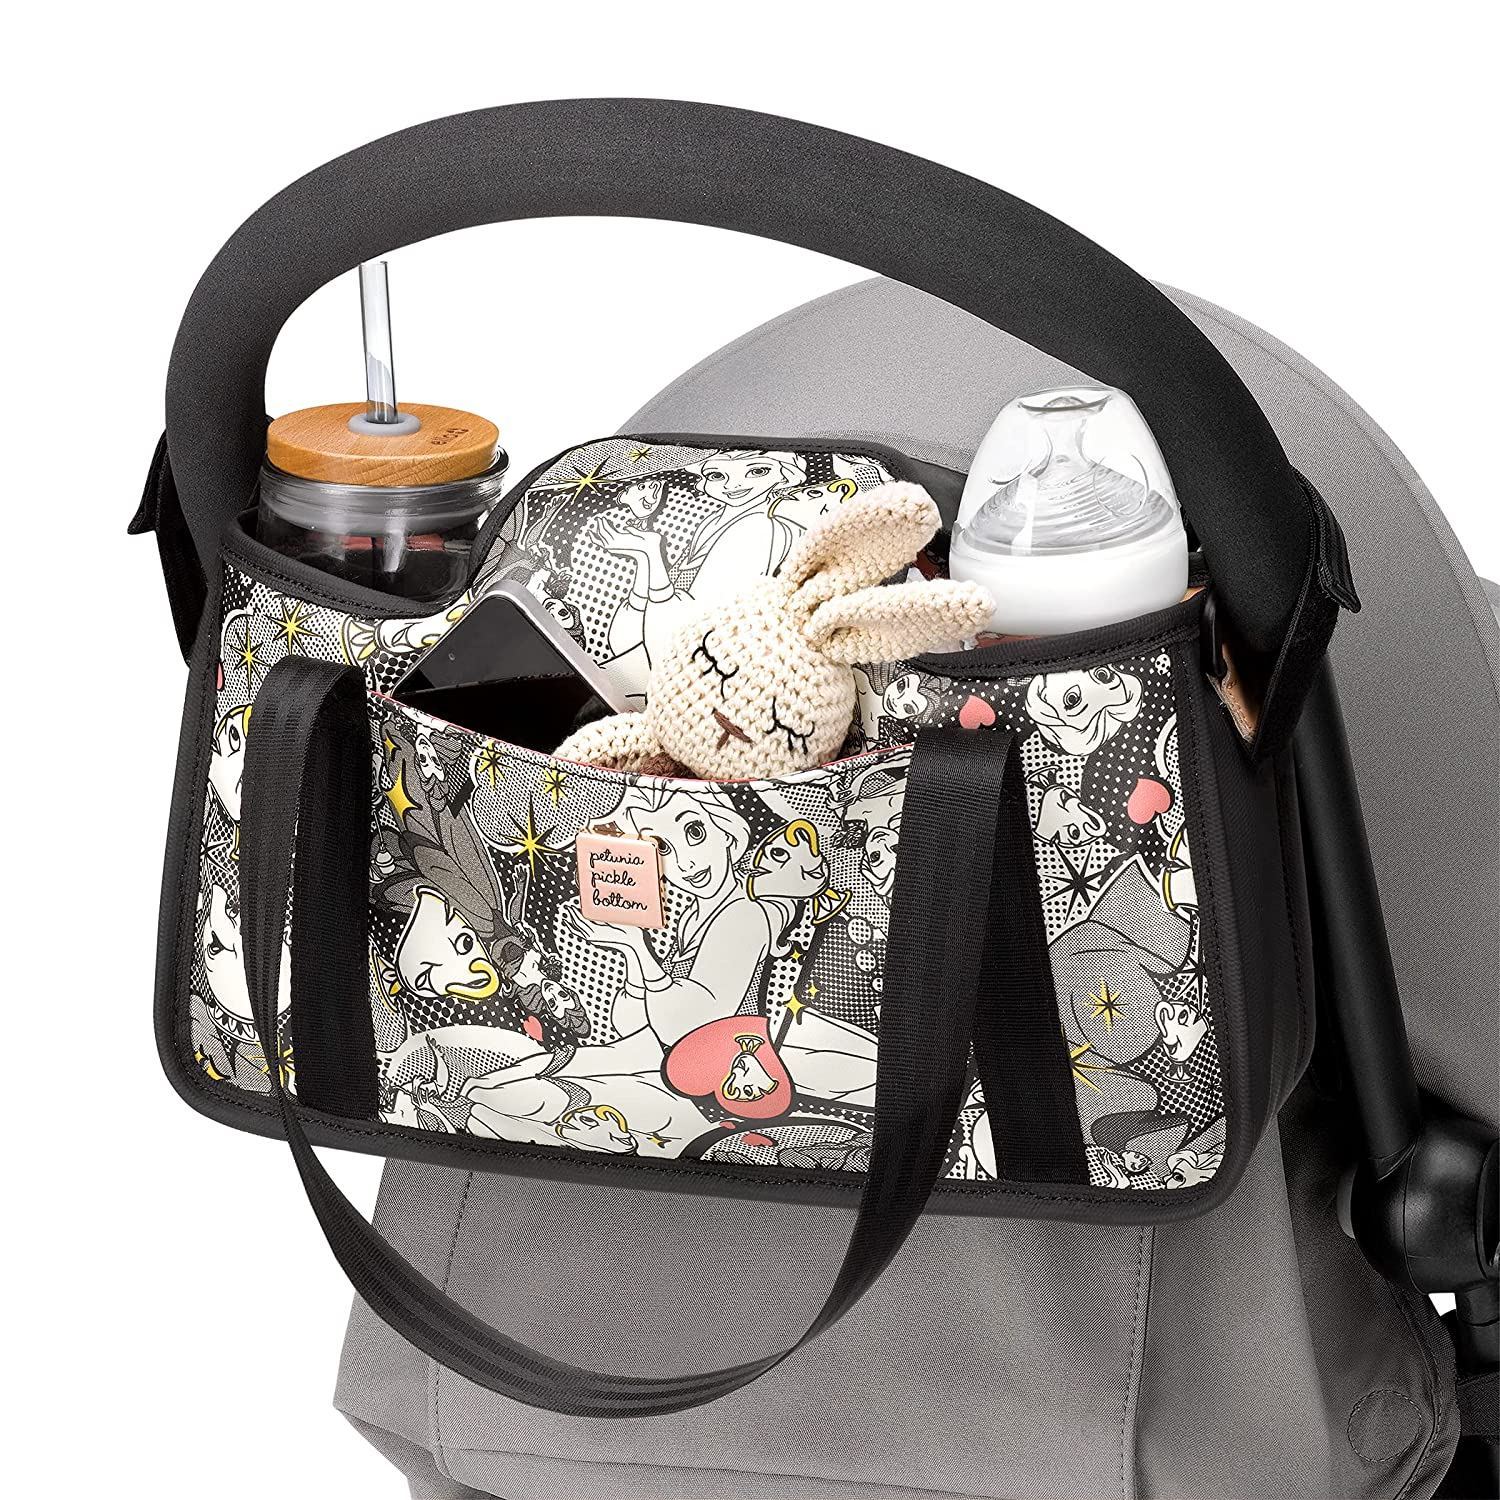 Petunia Pickle Bottom Wander Stroller Caddy   Perfect Baby Caddy to Keep Everything Organized   Multiple Carry Positions - Fits Most Strollers   Disney's Beauty & The Beast - Pop Art Belle